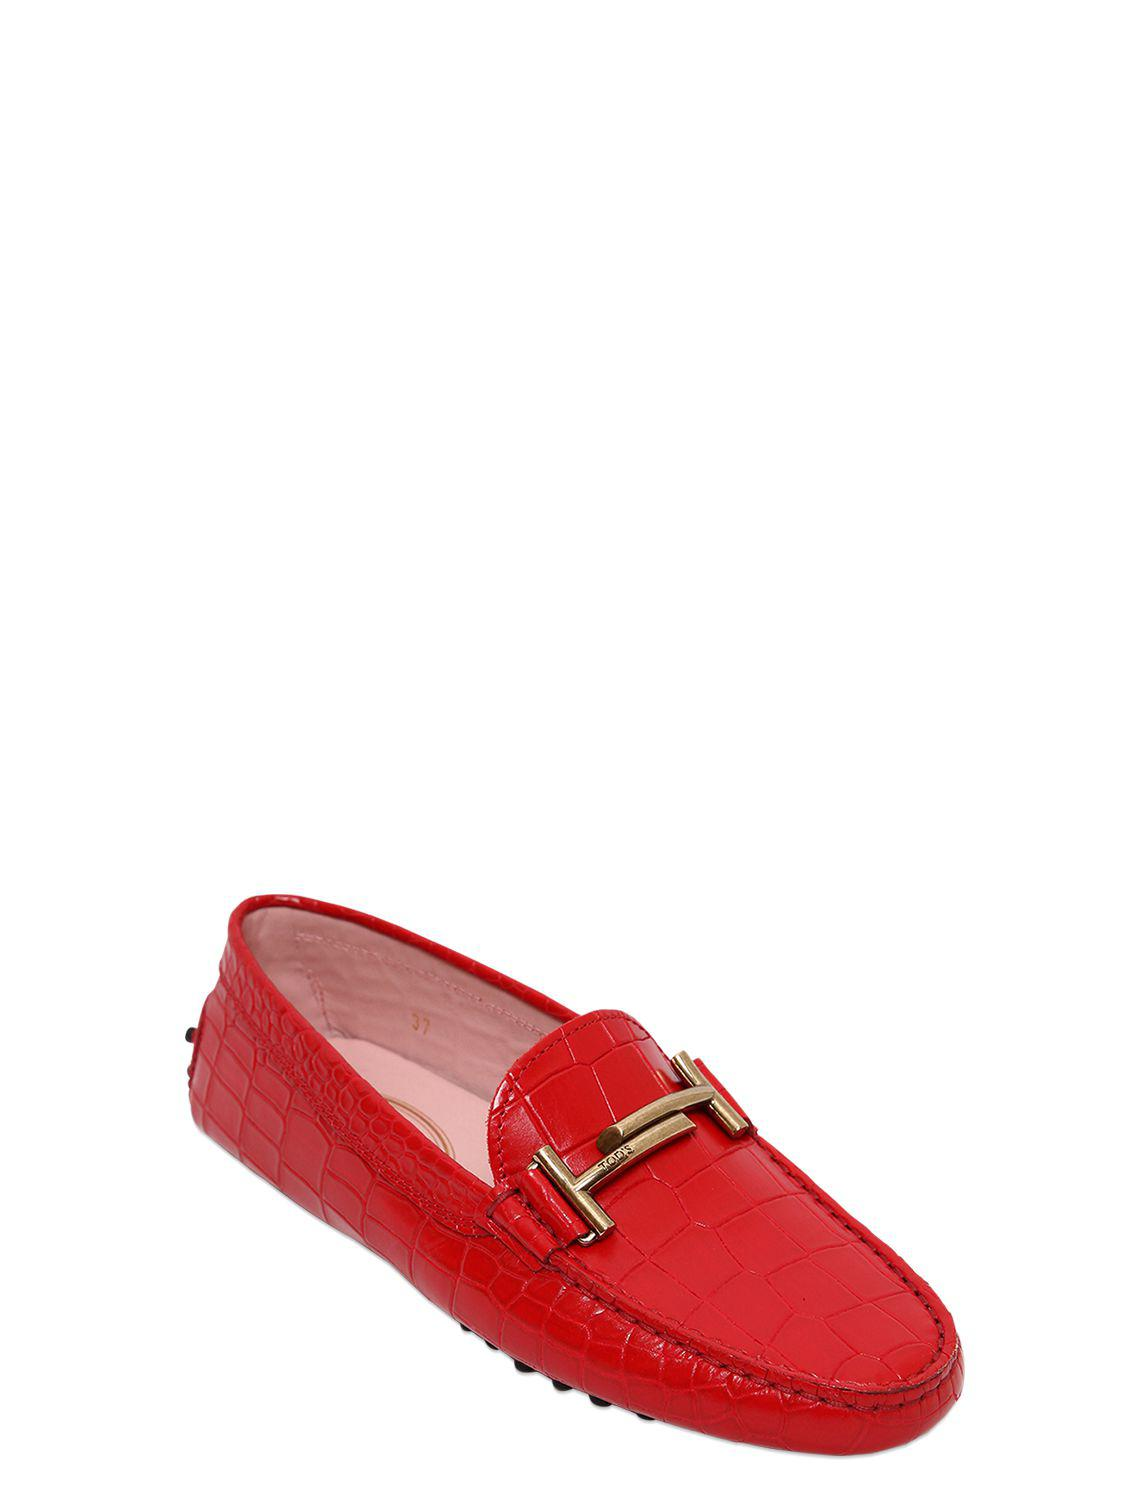 Tod's GOMMINO DOUBLE T CROC EMBOSSED LOAFERS fo4QFAL9MK